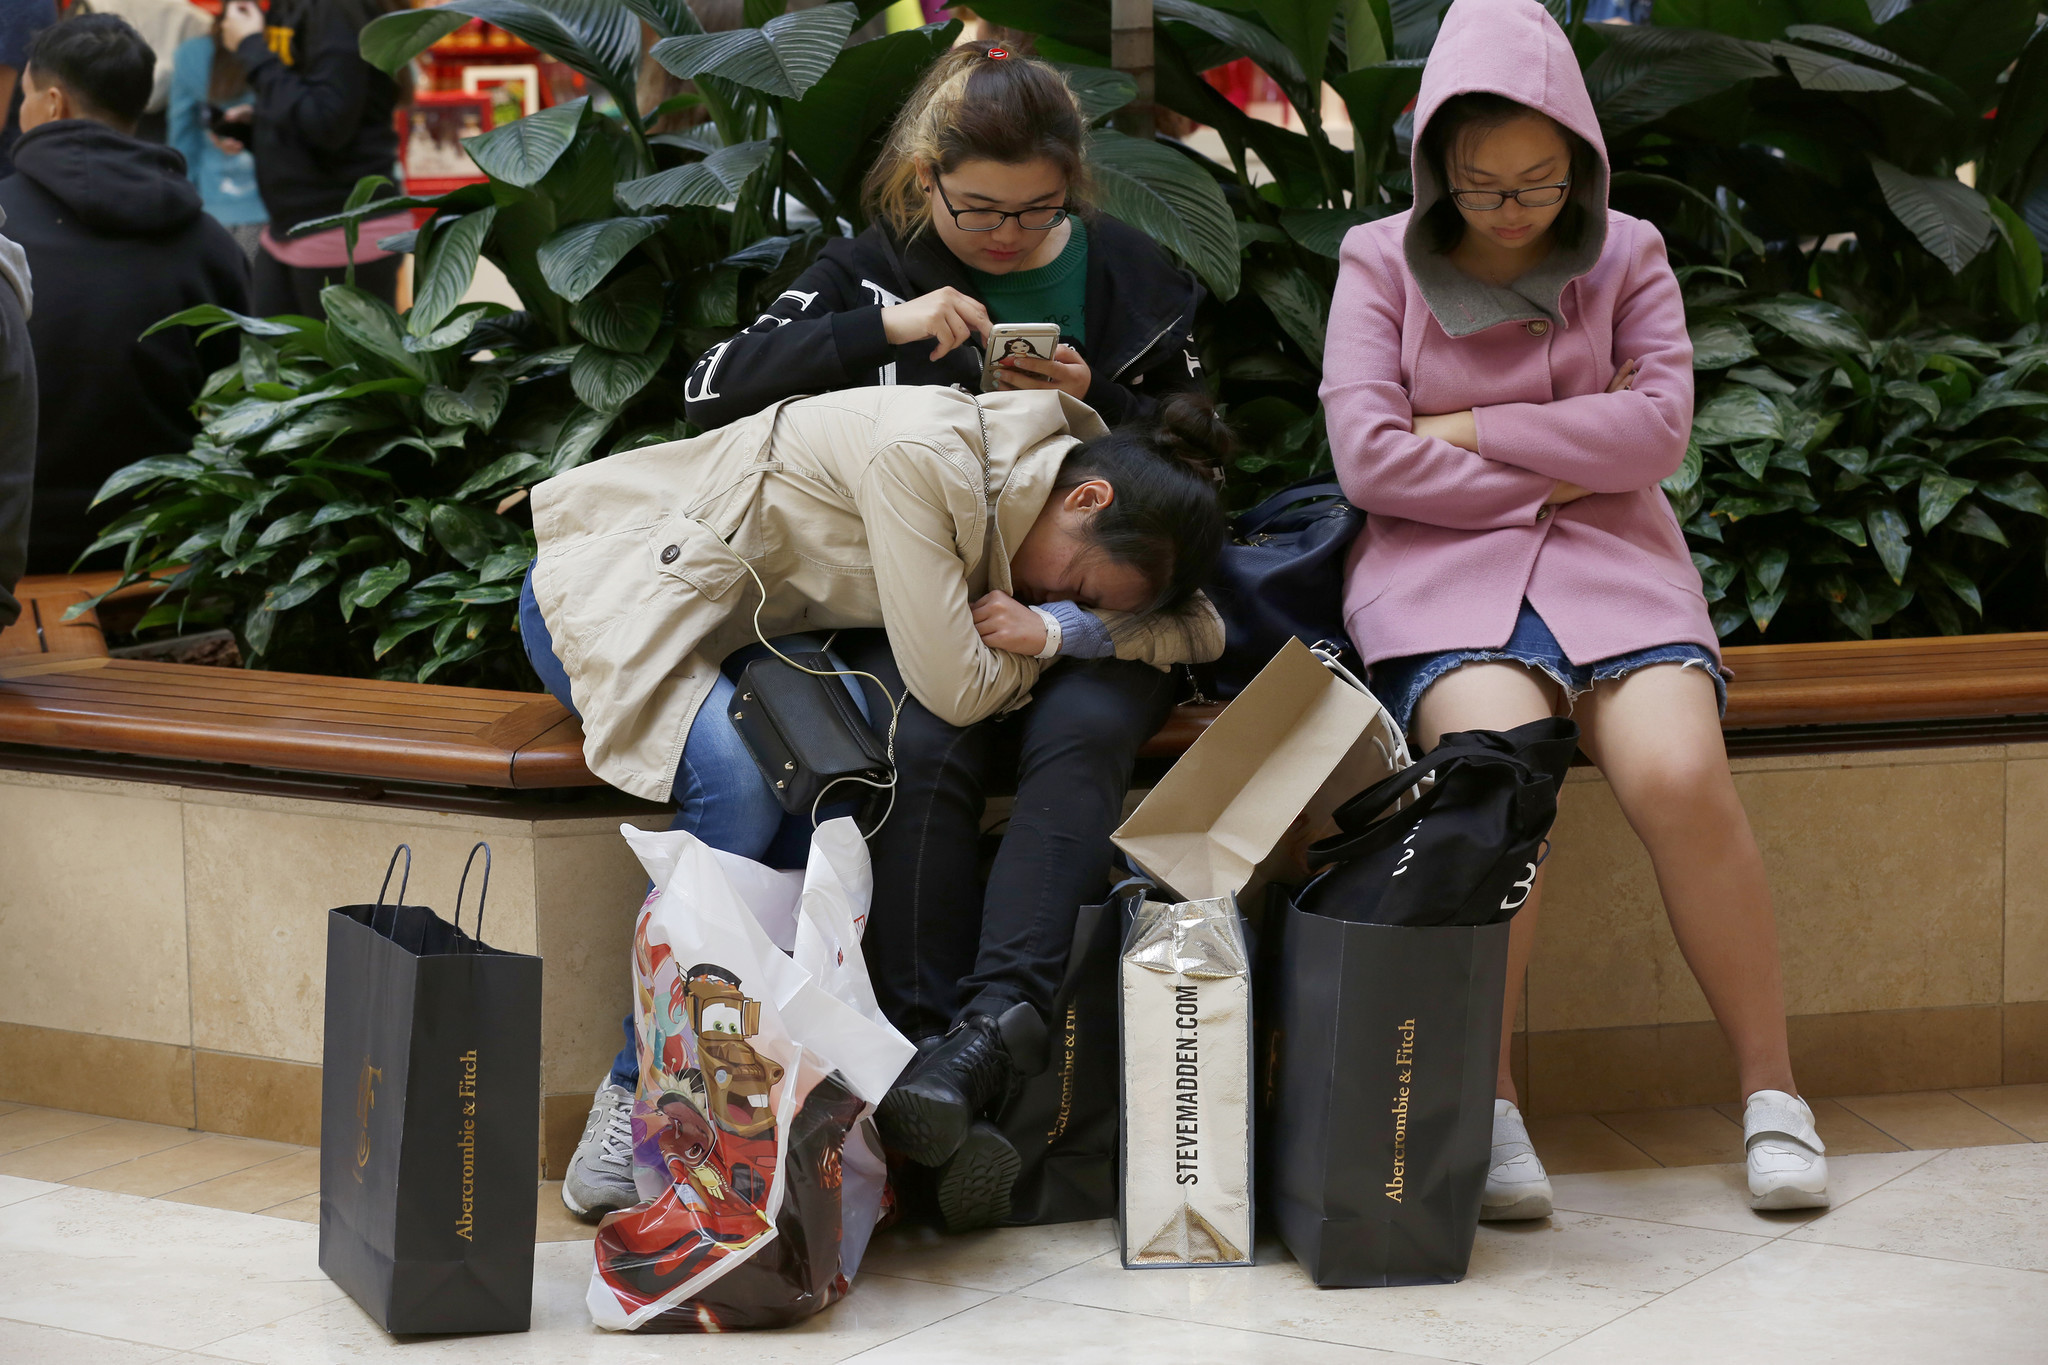 Consumers gave retailers only a modest boost in November, showing a  reluctance to spend lavishly at the start of the holiday shopping season c65d3d8db3